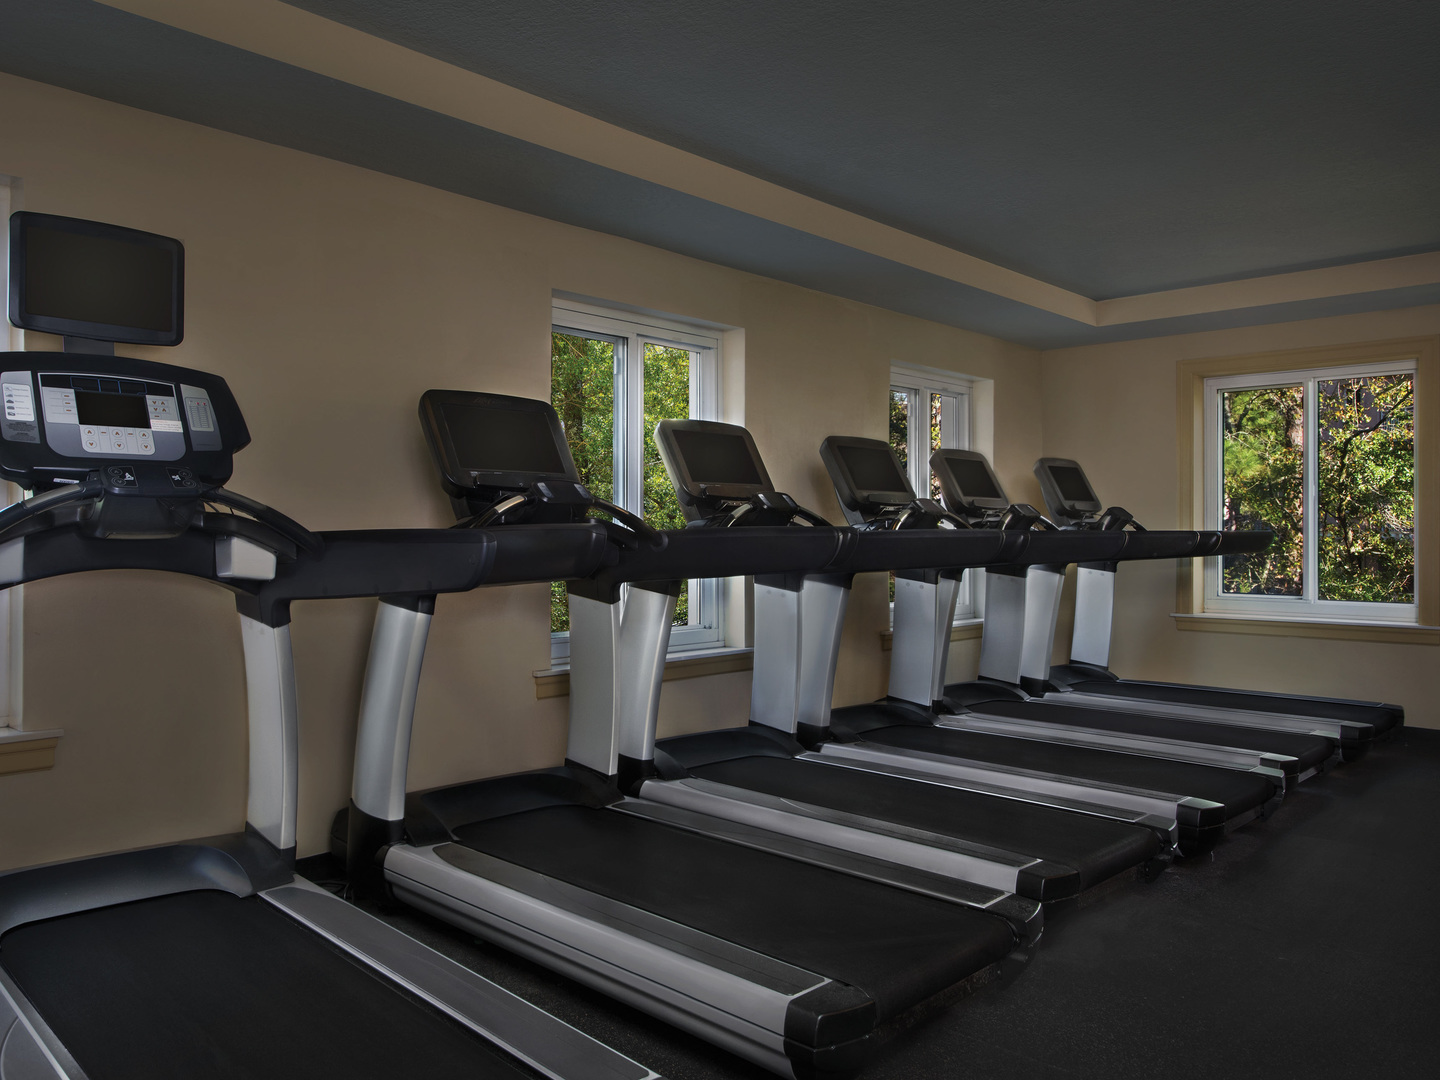 Marriott's SurfWatch<span class='trademark'>®</span> Fitness Center. Marriott's SurfWatch<span class='trademark'>®</span> is located in Hilton Head Island, South Carolina United States.